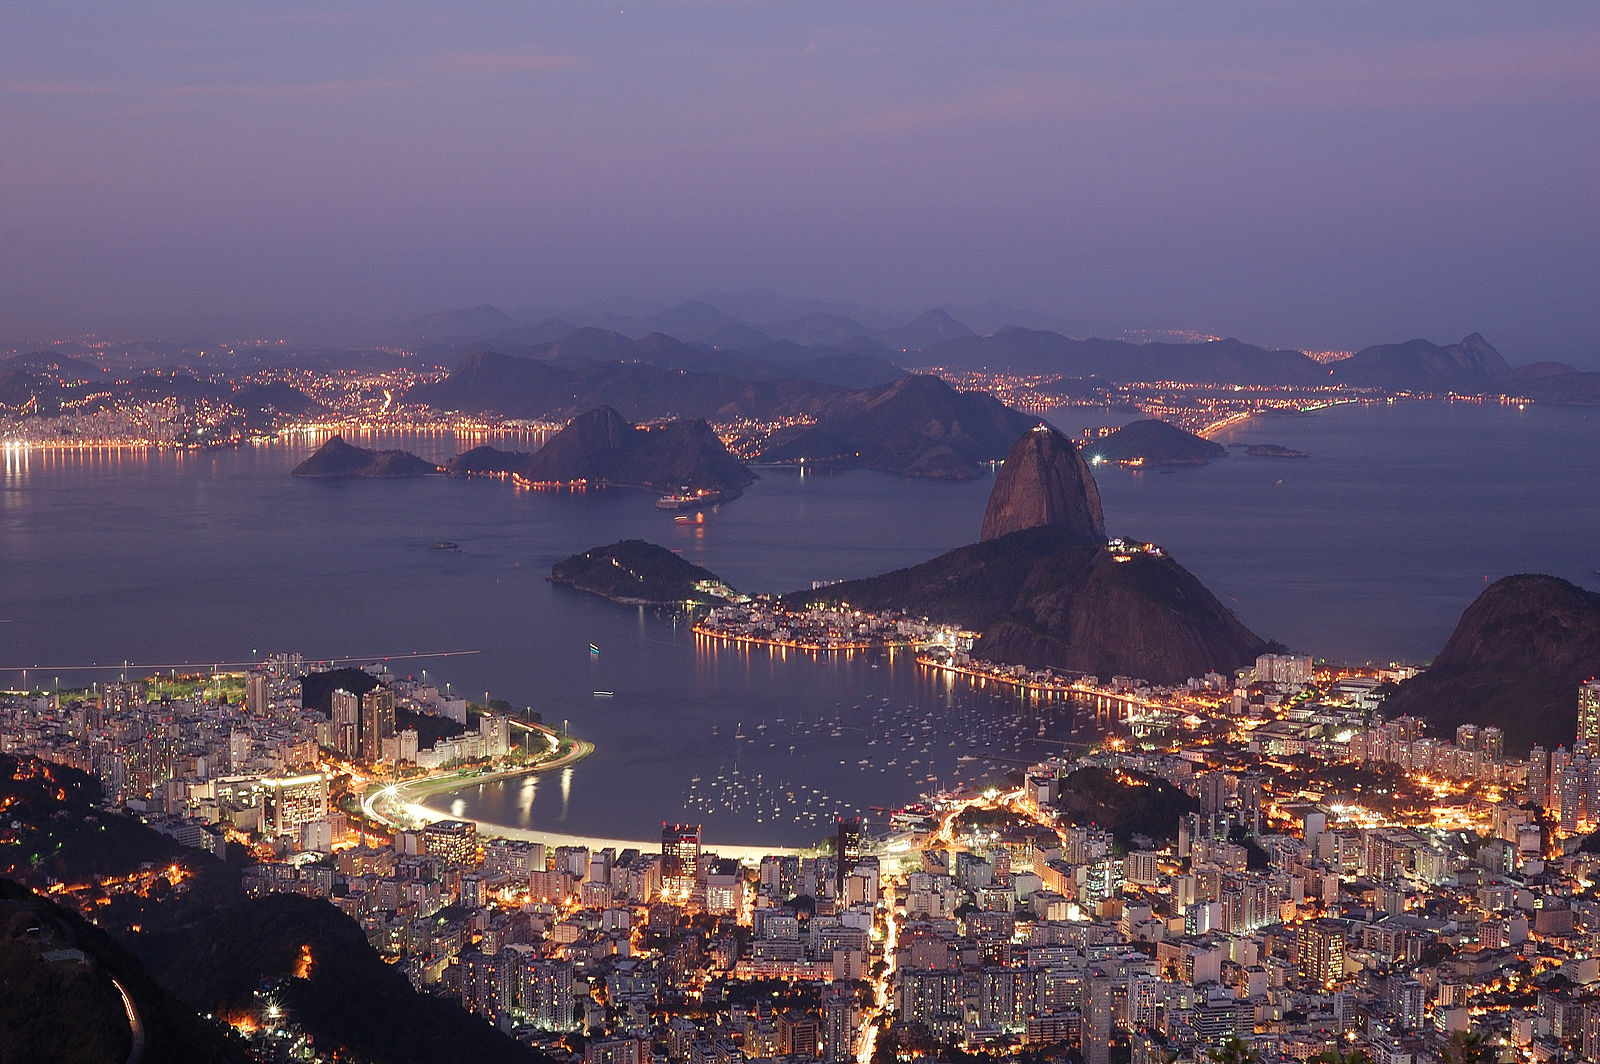 Rio Night. Wikimedia Commons. Source: Flickr. Author: Rosino. cc-by-sa-2.0